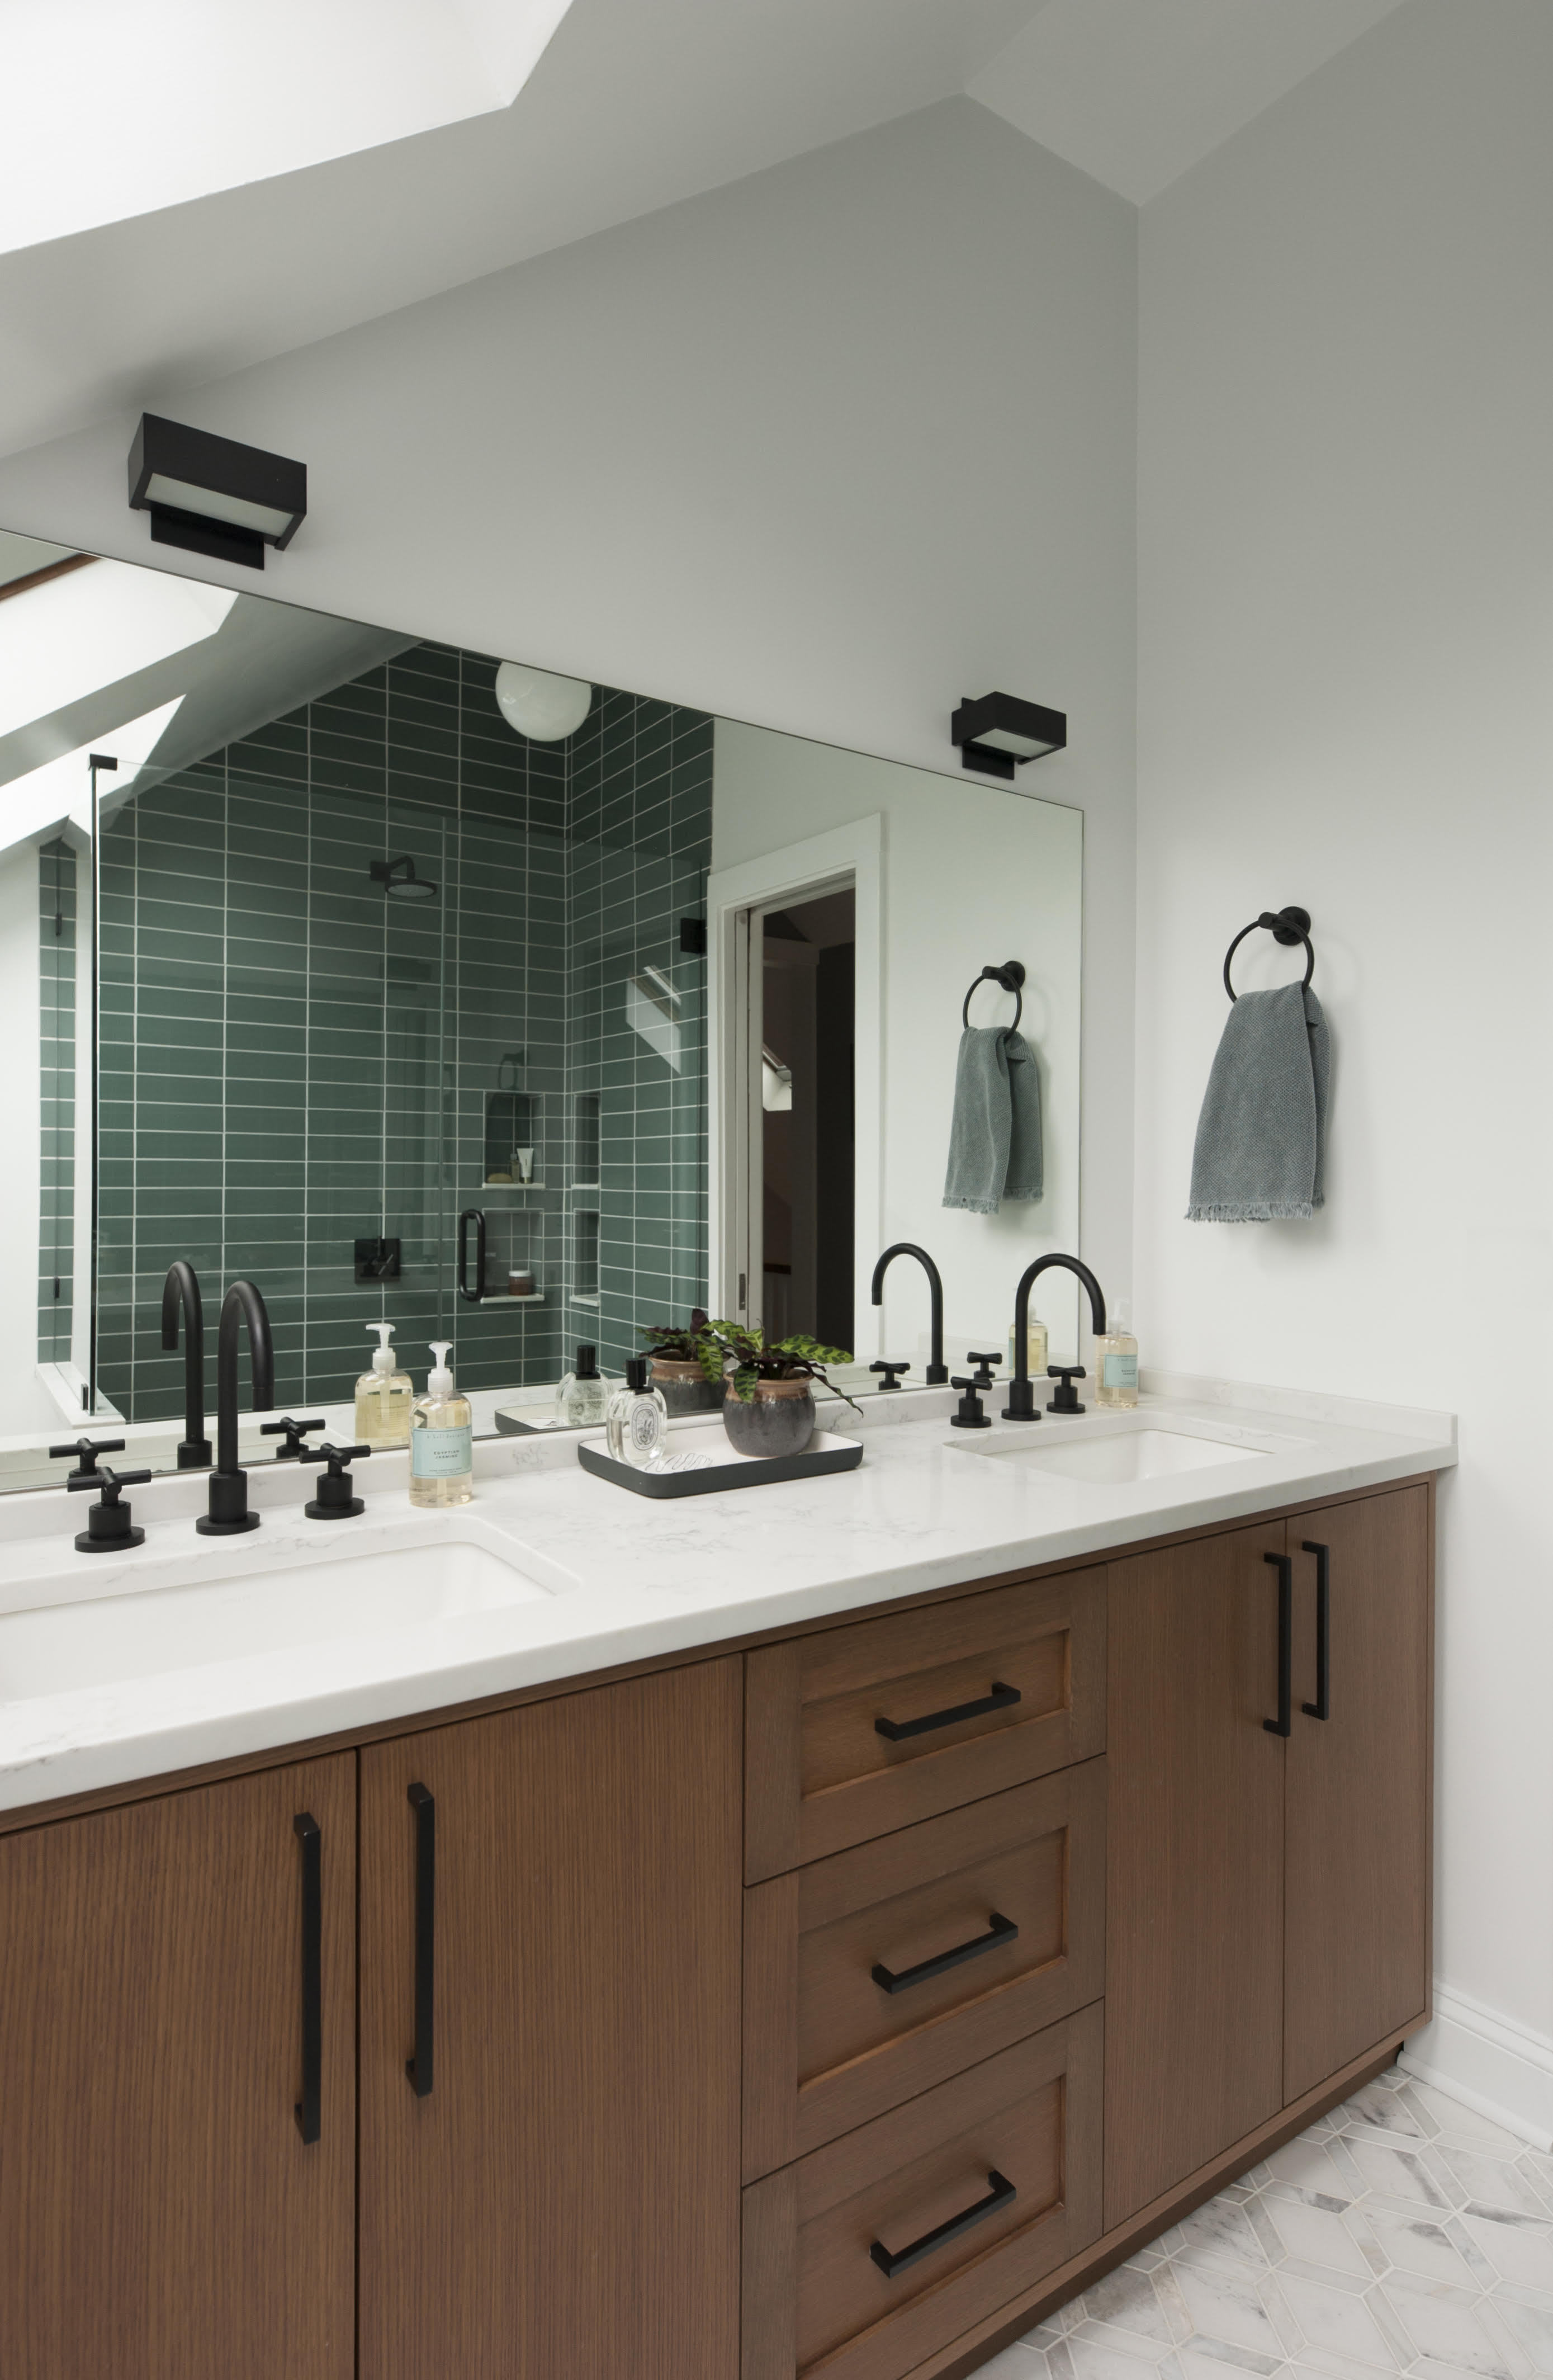 2018_img_residential_RIGHTS_haywoodmade_interiors_petra_ford_paper_and_plate_photography_bathroom_shower_surround_pan_floor_straight_stack_flagstone_3x9_ceramic_glazed_edge_trim_mosaic_222_hex_FC251851_1.jpg?mtime=20190607155423#asset:456453